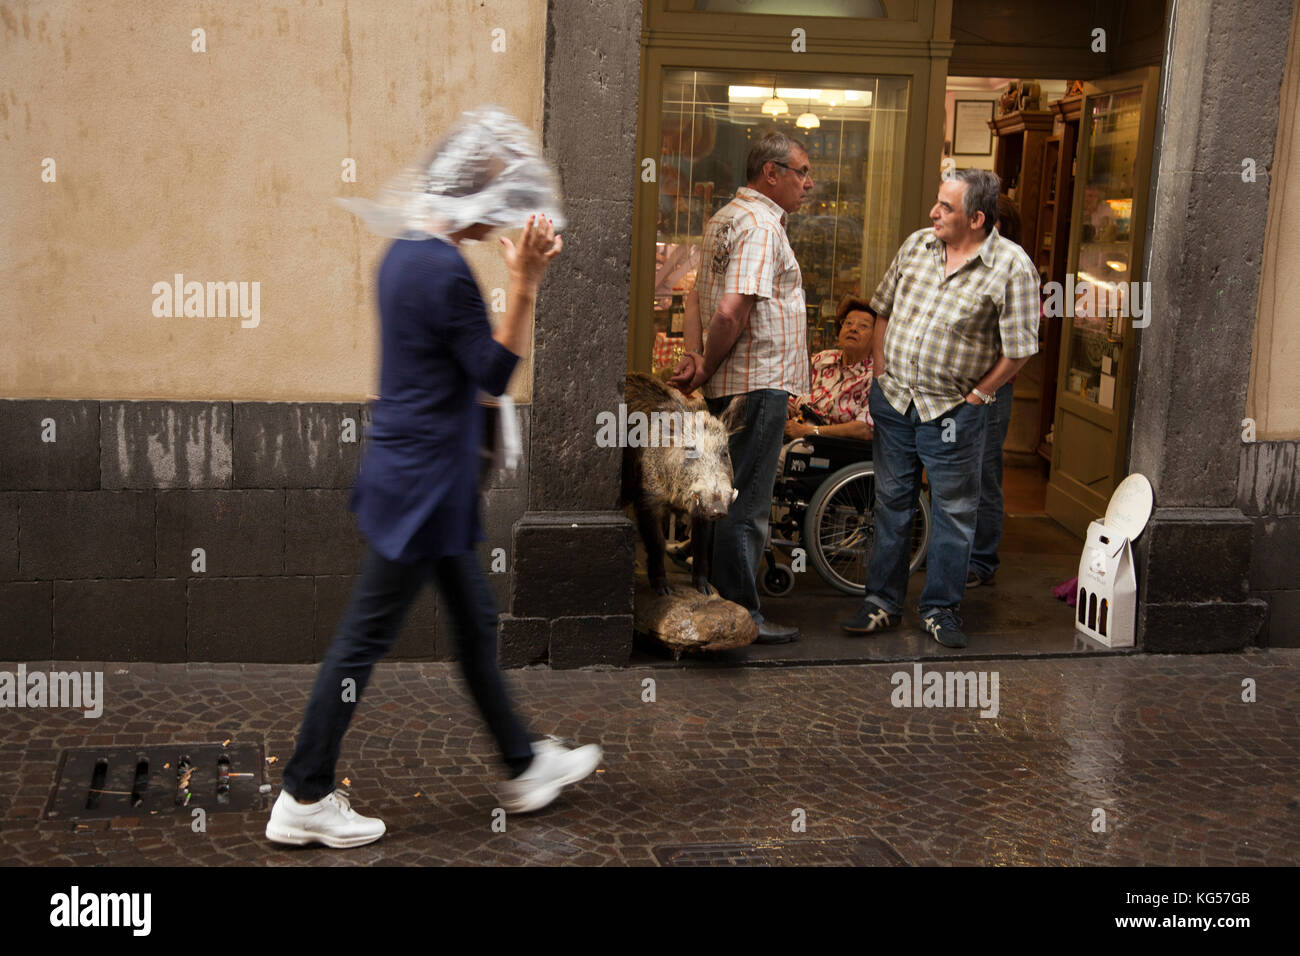 A woman covers her head in plastic as she walks past a butcher shop in the rain in the Umbrian town of Orvieto, - Stock Image